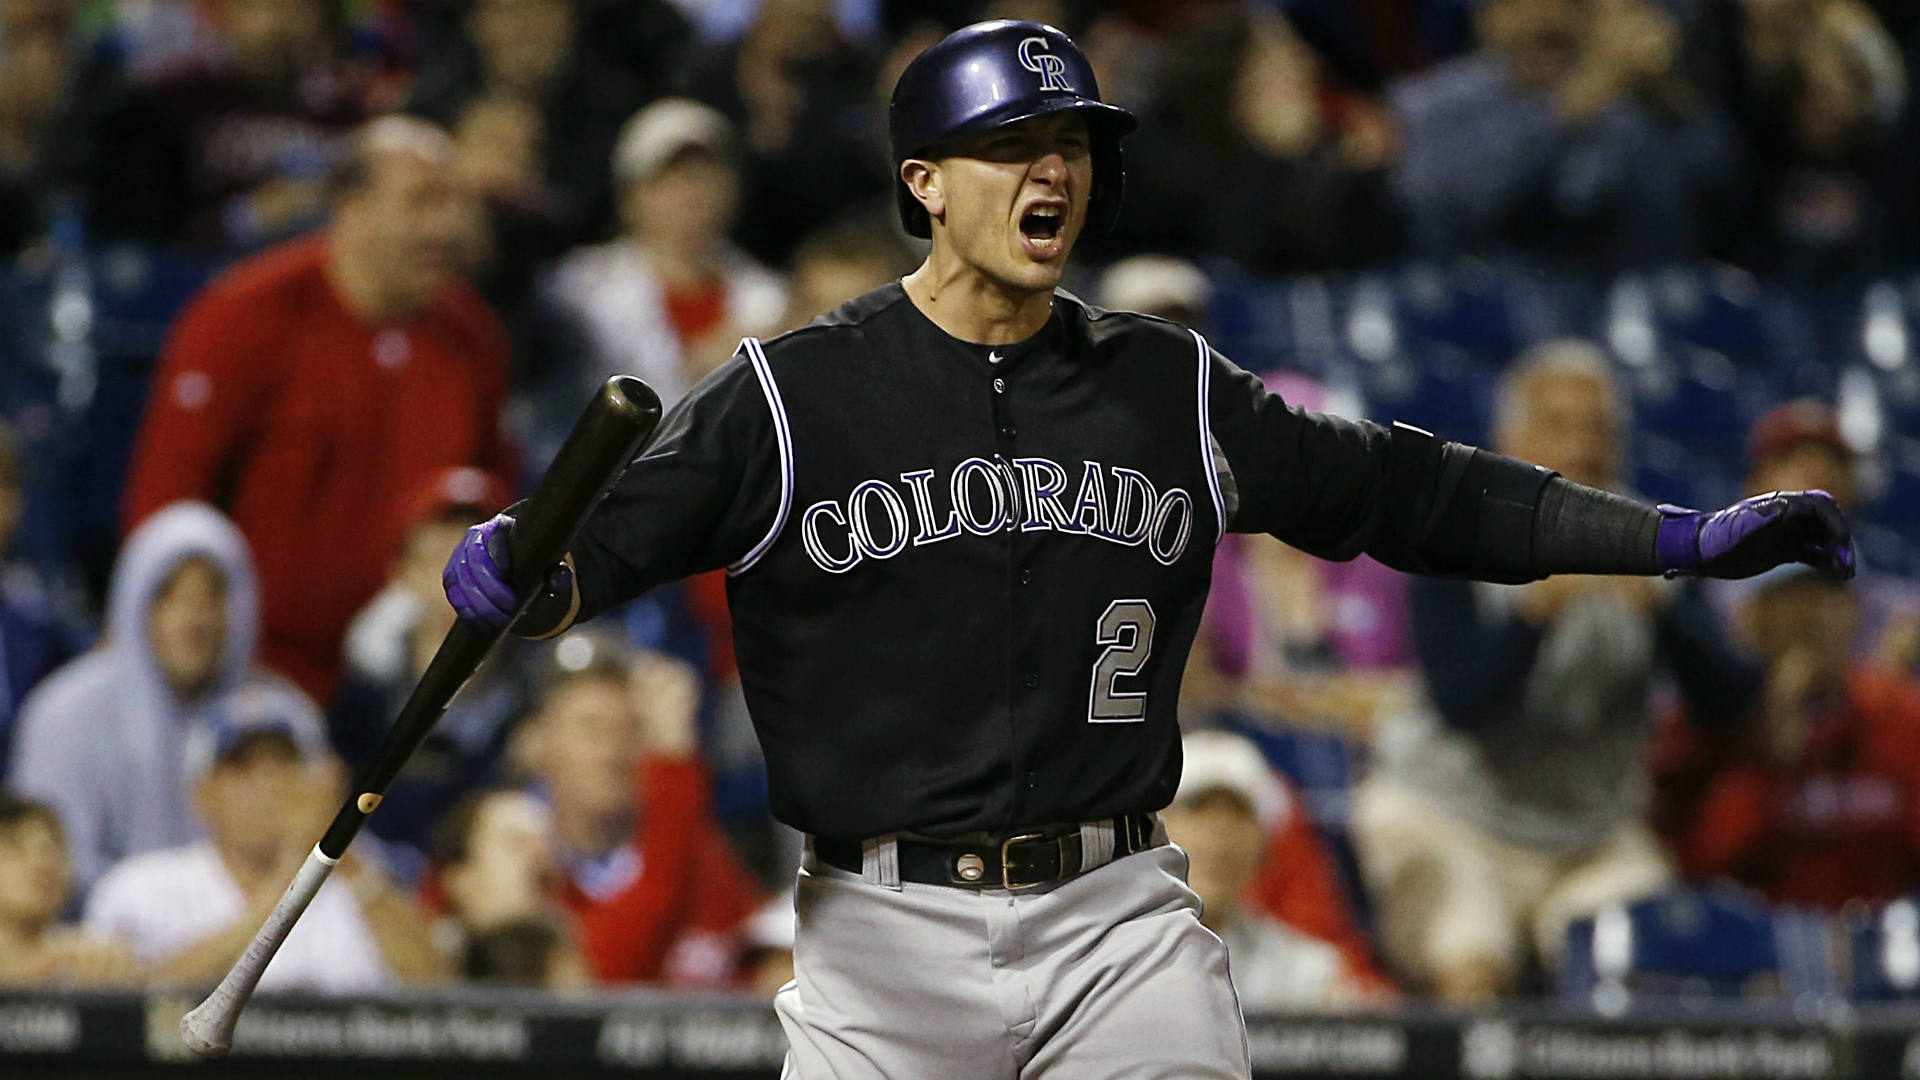 Shortstop rankings: Tulo still head and shoulders above the rest